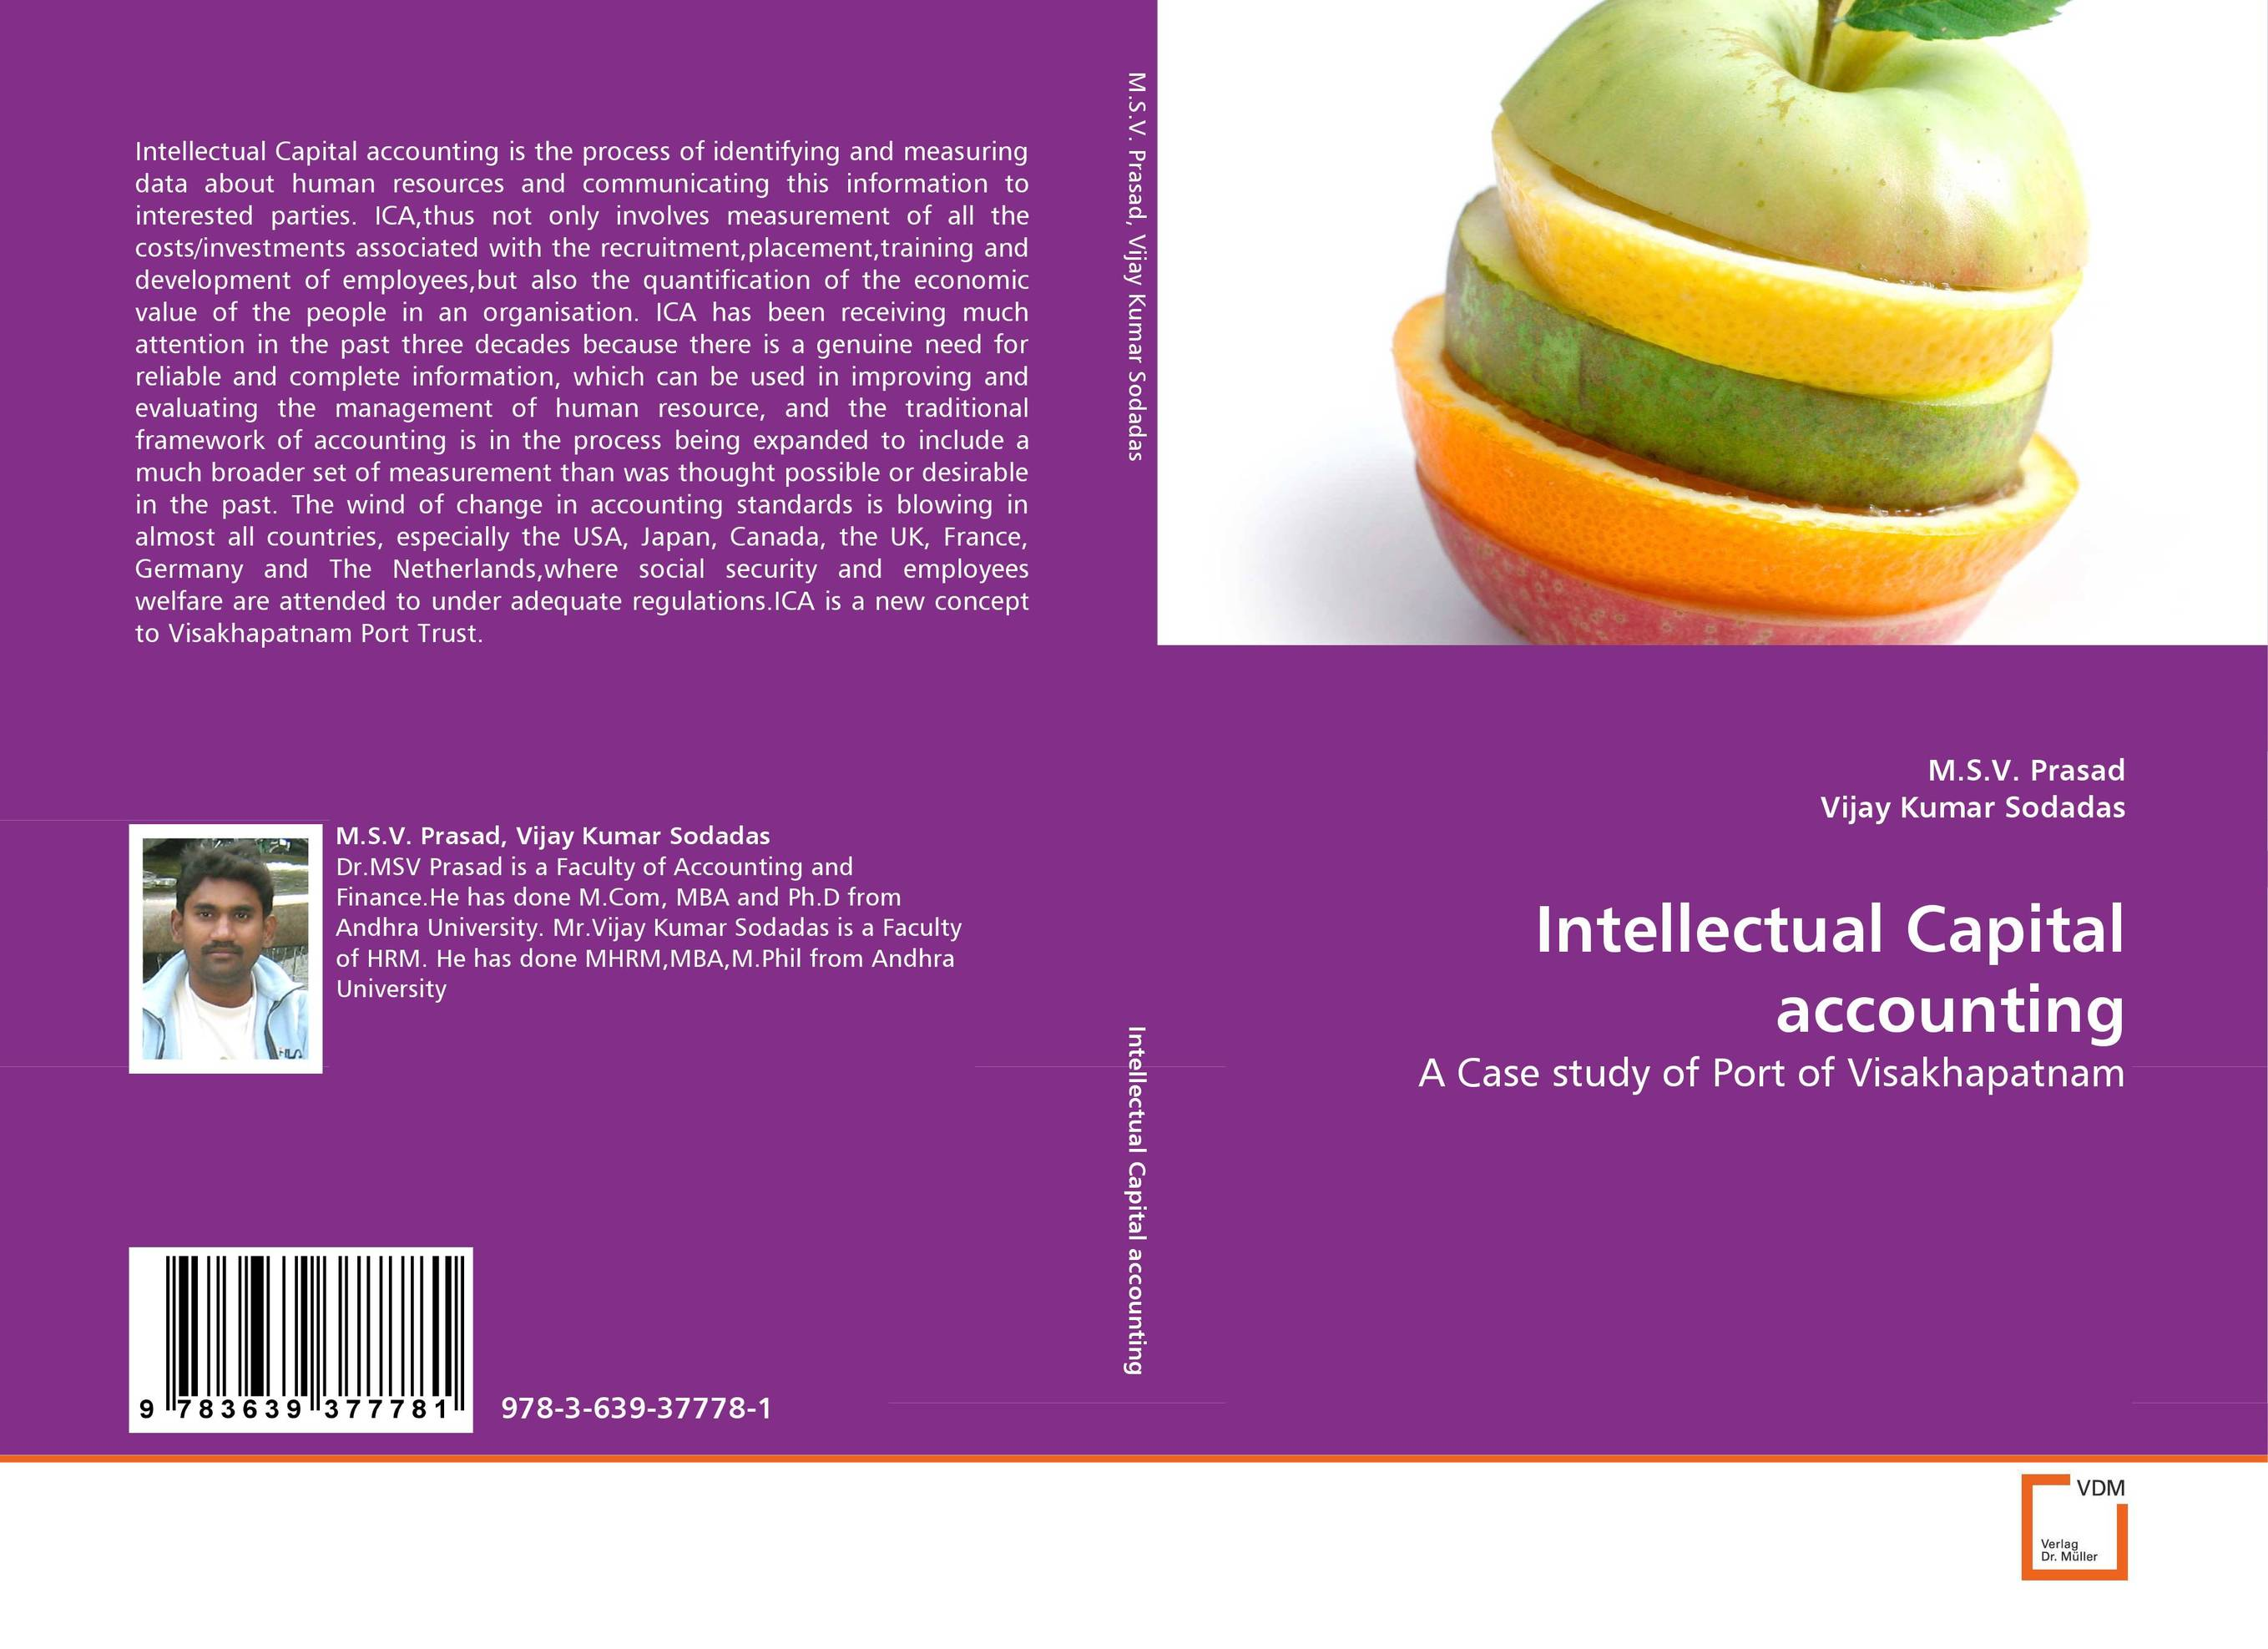 Intellectual Capital accounting perspectives on intellectual capital multidisciplinary insights into management measurement and reporting